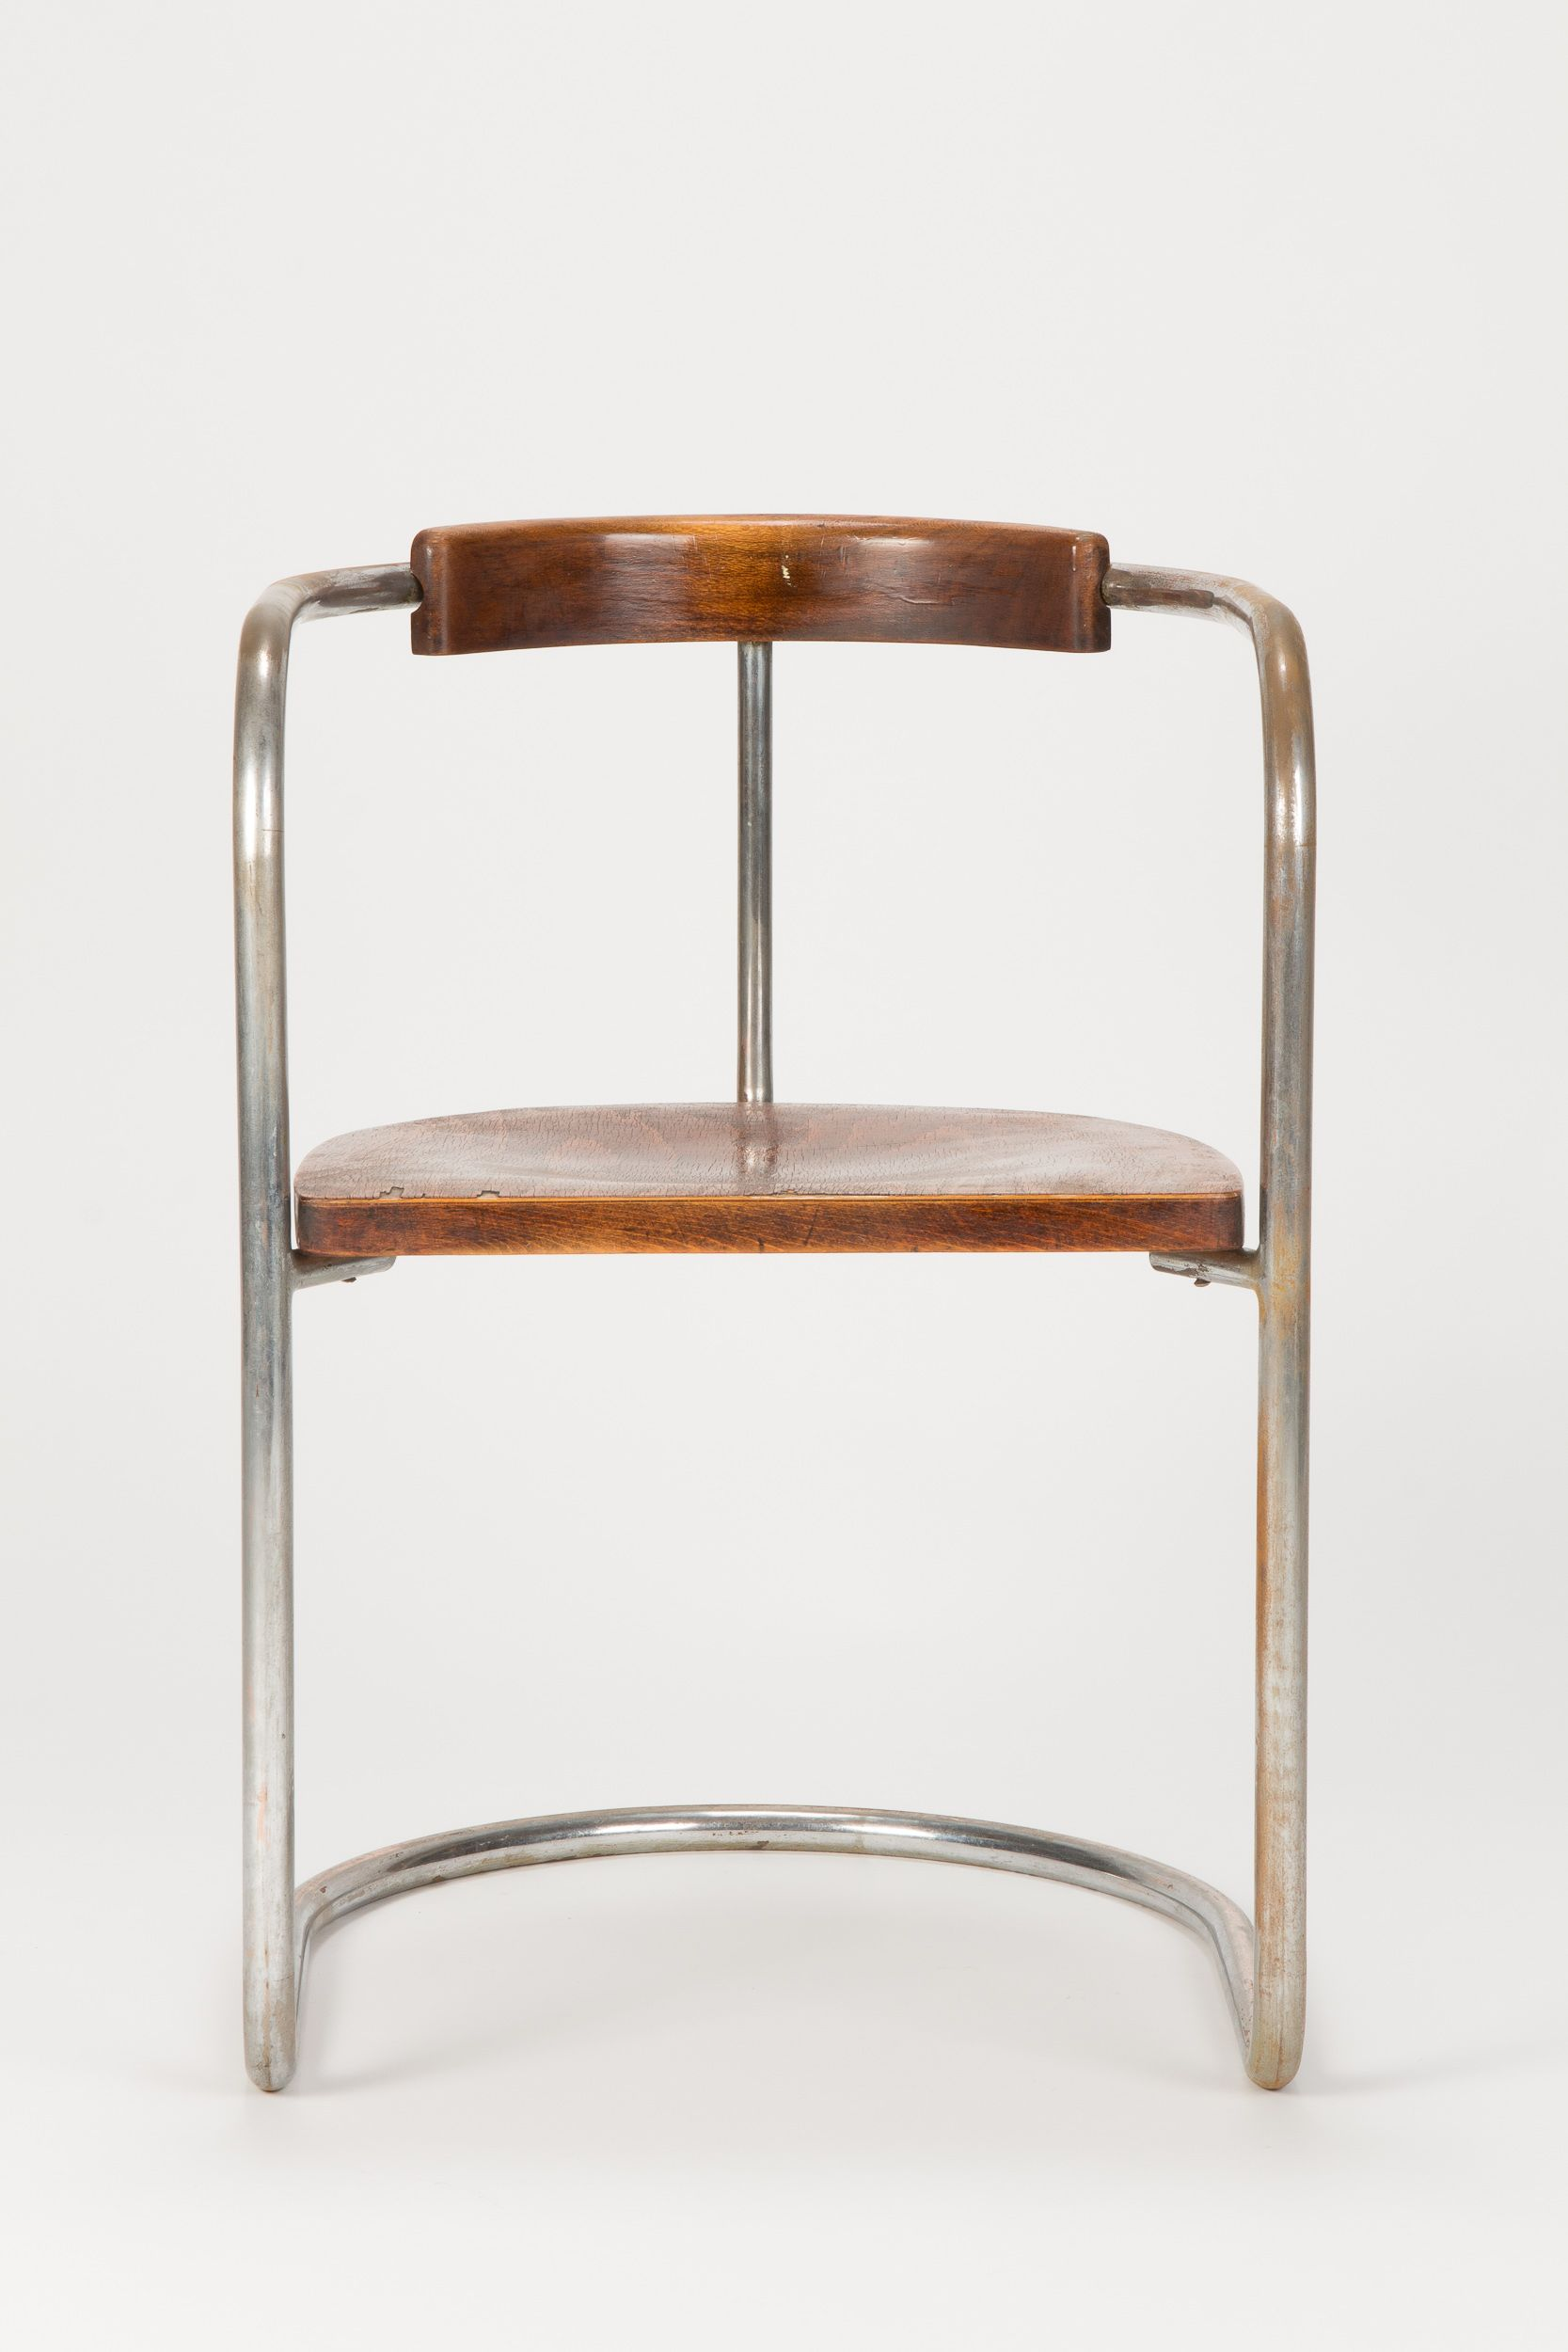 Bauhaus tubular steel lounge chair at 1stdibs - Bauhaus Steel Tube Cantilever Chair 30s Designer And Manufacturer Anonymous Sold By Okay Art